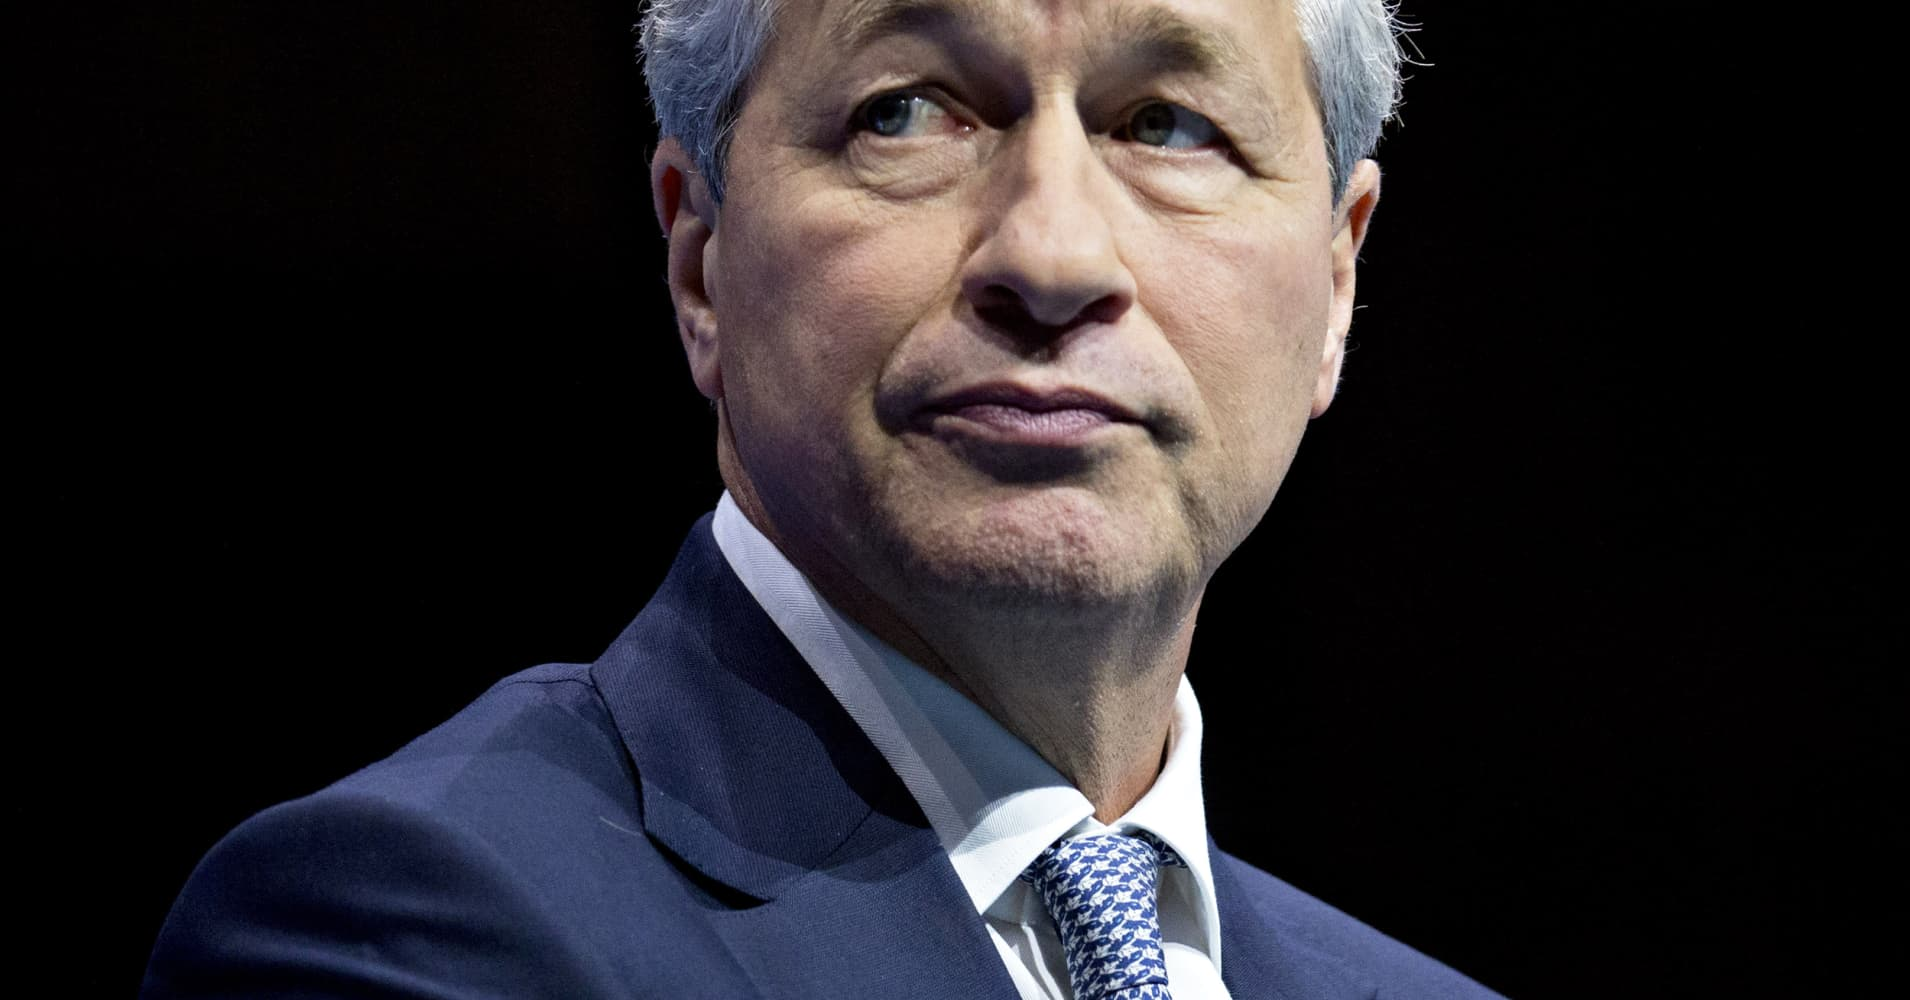 JP Morgan's Dimon Hosted a Dinner for Pharma Executives, and a Major Topic was Amazon